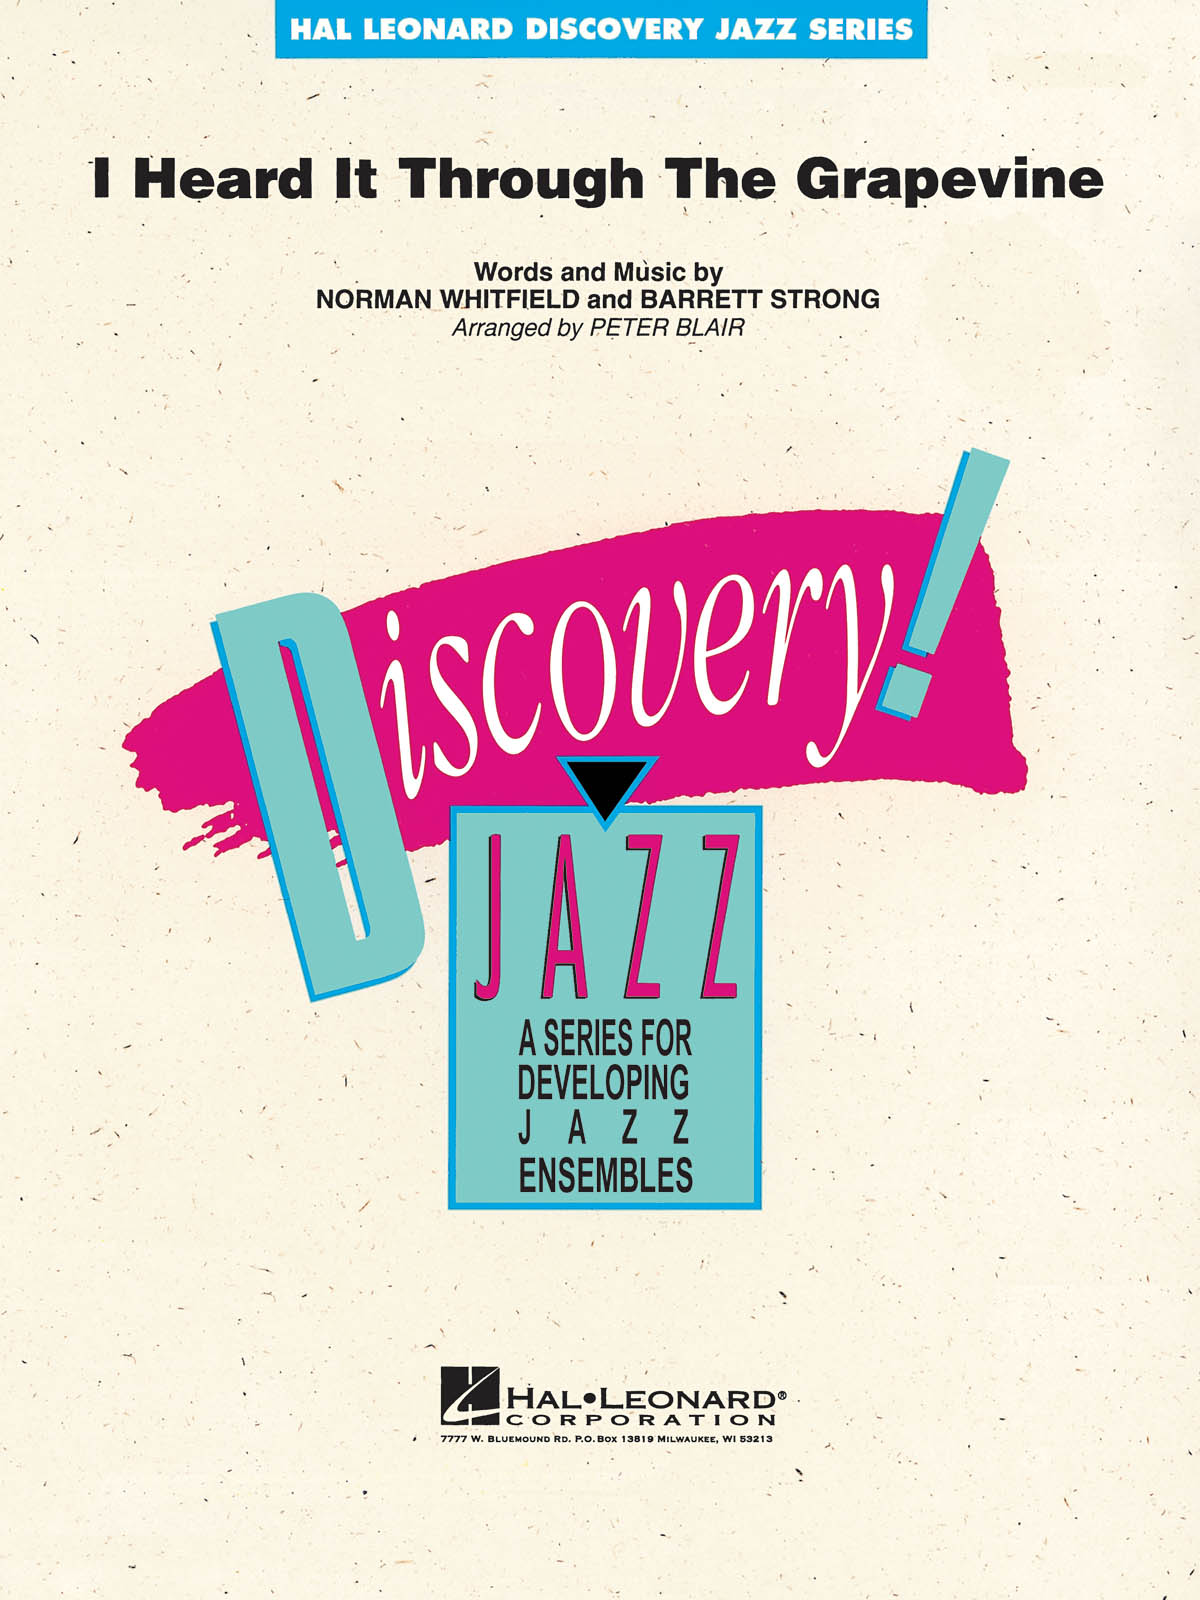 I Heard It Through The Grapevine: Discovery Jazz